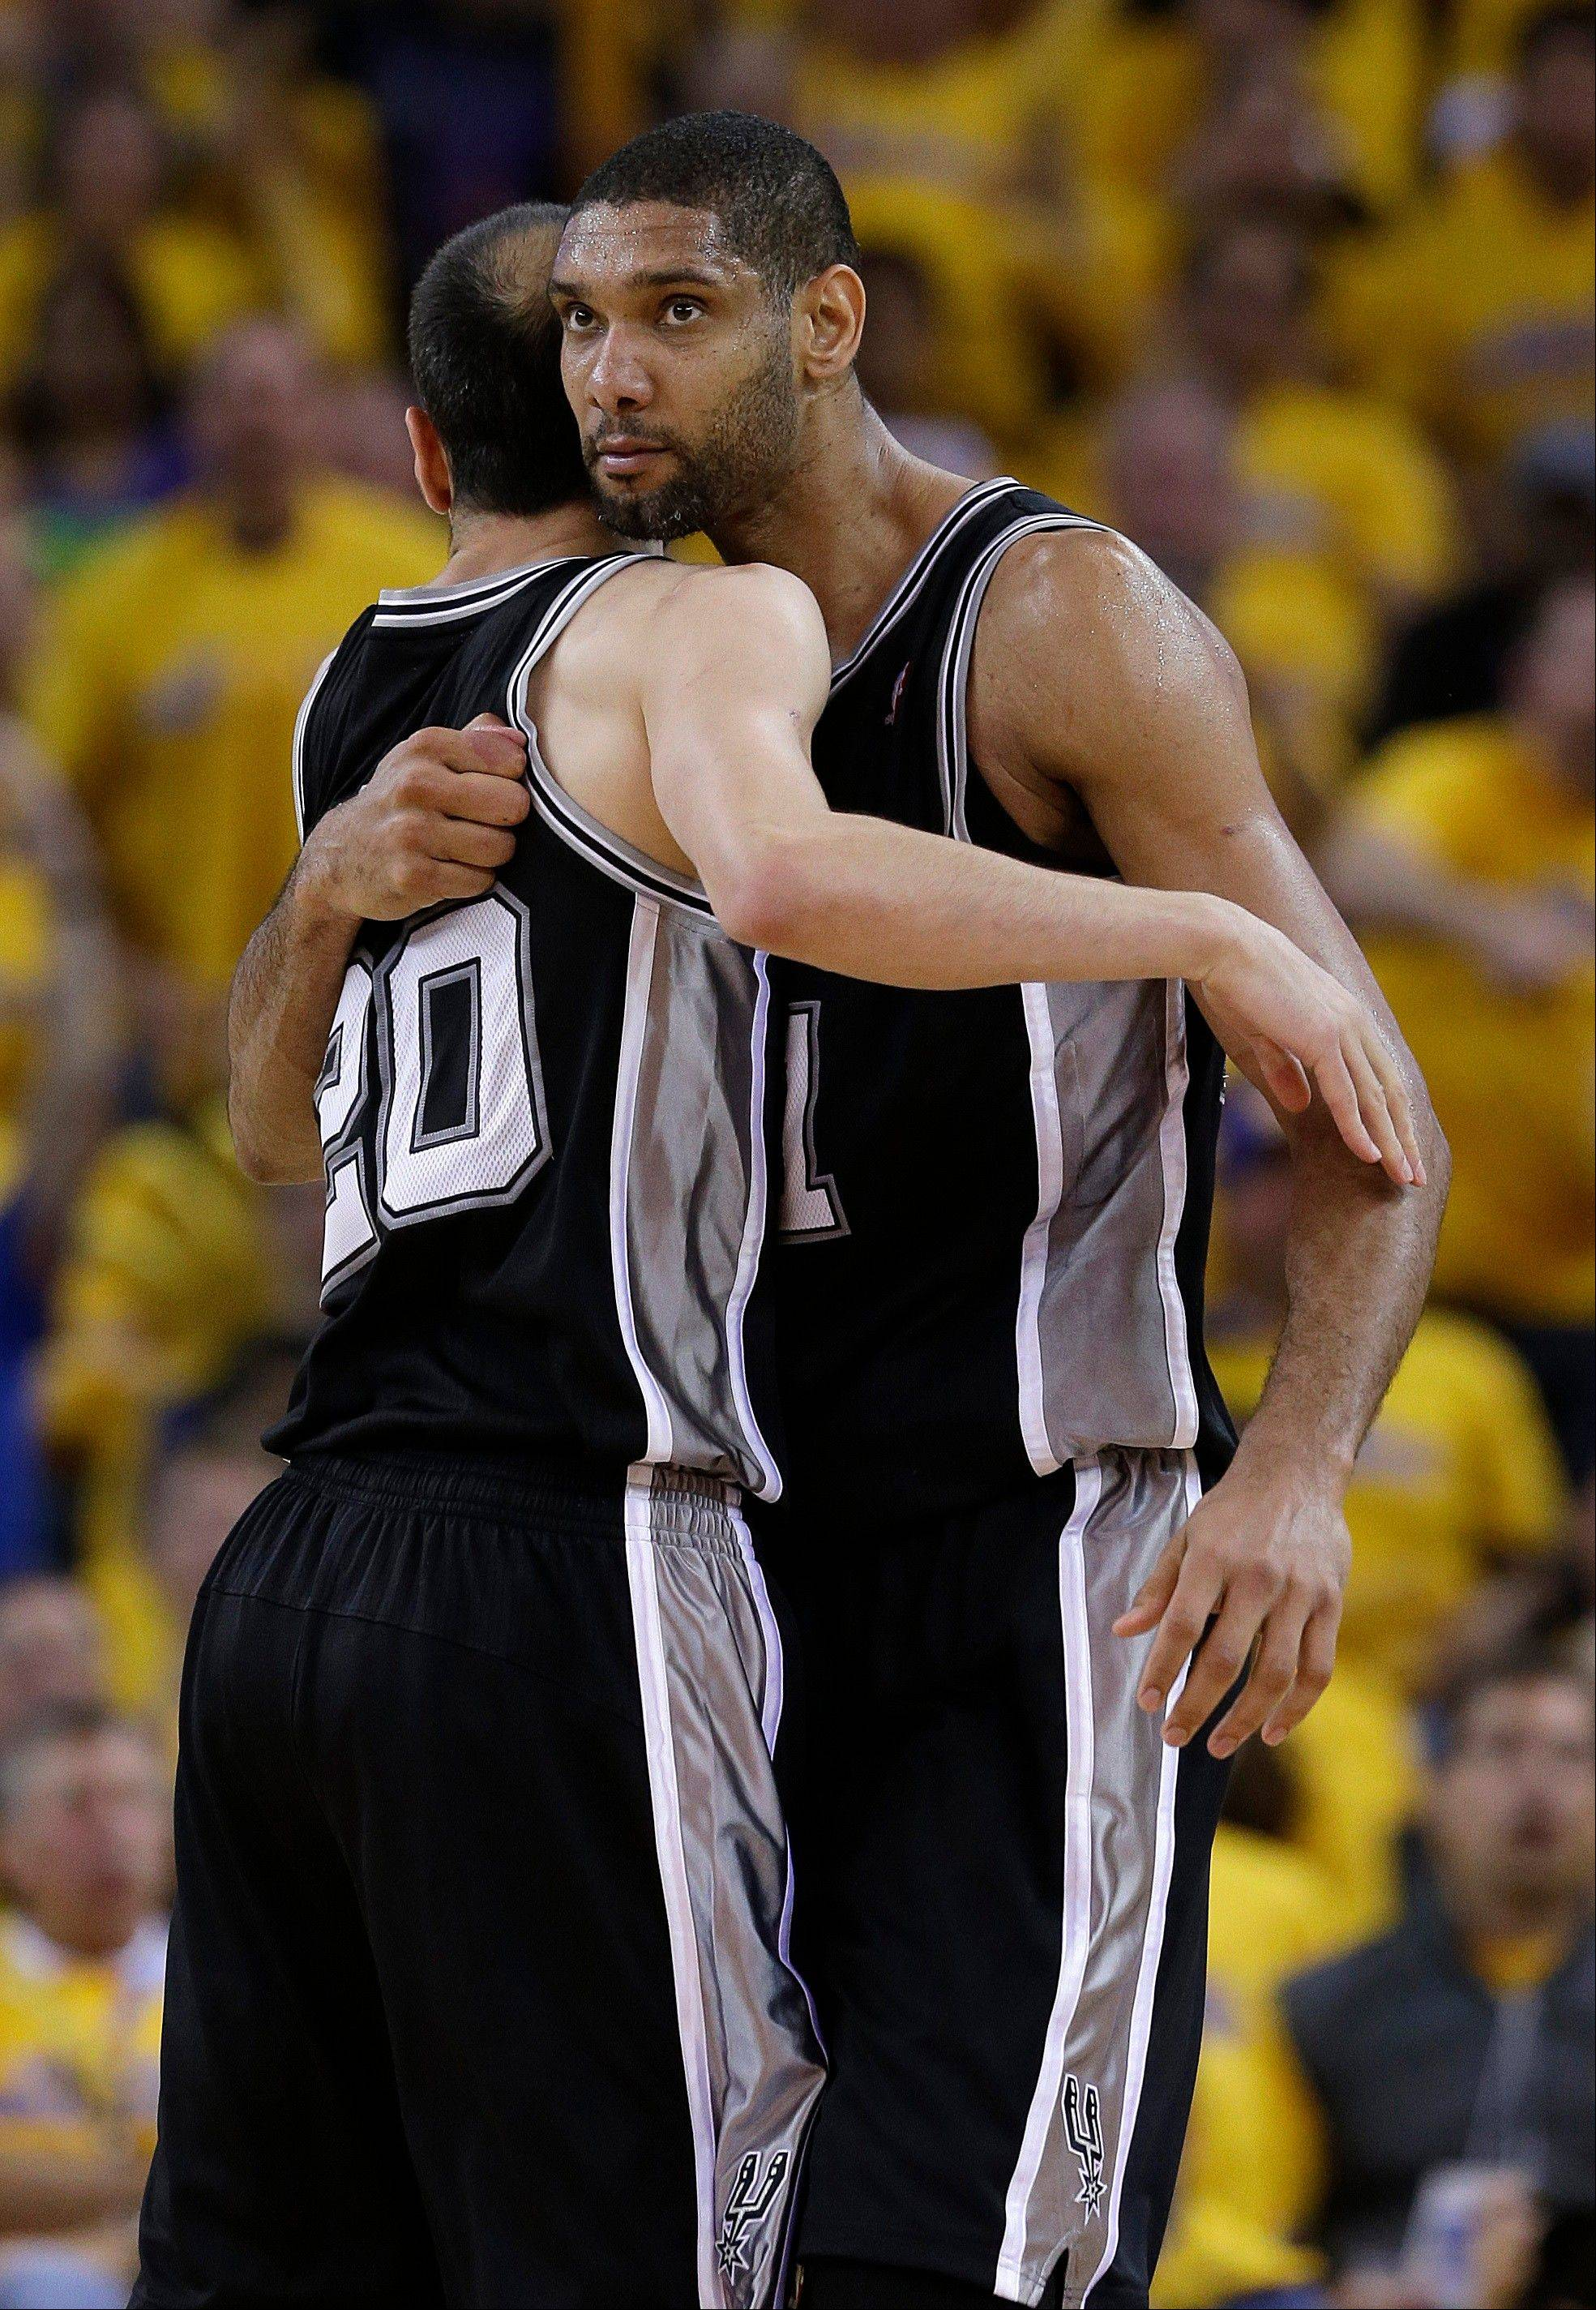 San Antonio Spurs forward Tim Duncan, right, hugs shooting guard Manu Ginobili (20), after Duncan made a basket during the fourth quarter of Game 3 of a Western Conference semifinal NBA basketball playoff series in Oakland, Calif., Friday, May 10, 2013. The Spurs won 102-92. (AP Photo/Jeff Chiu)